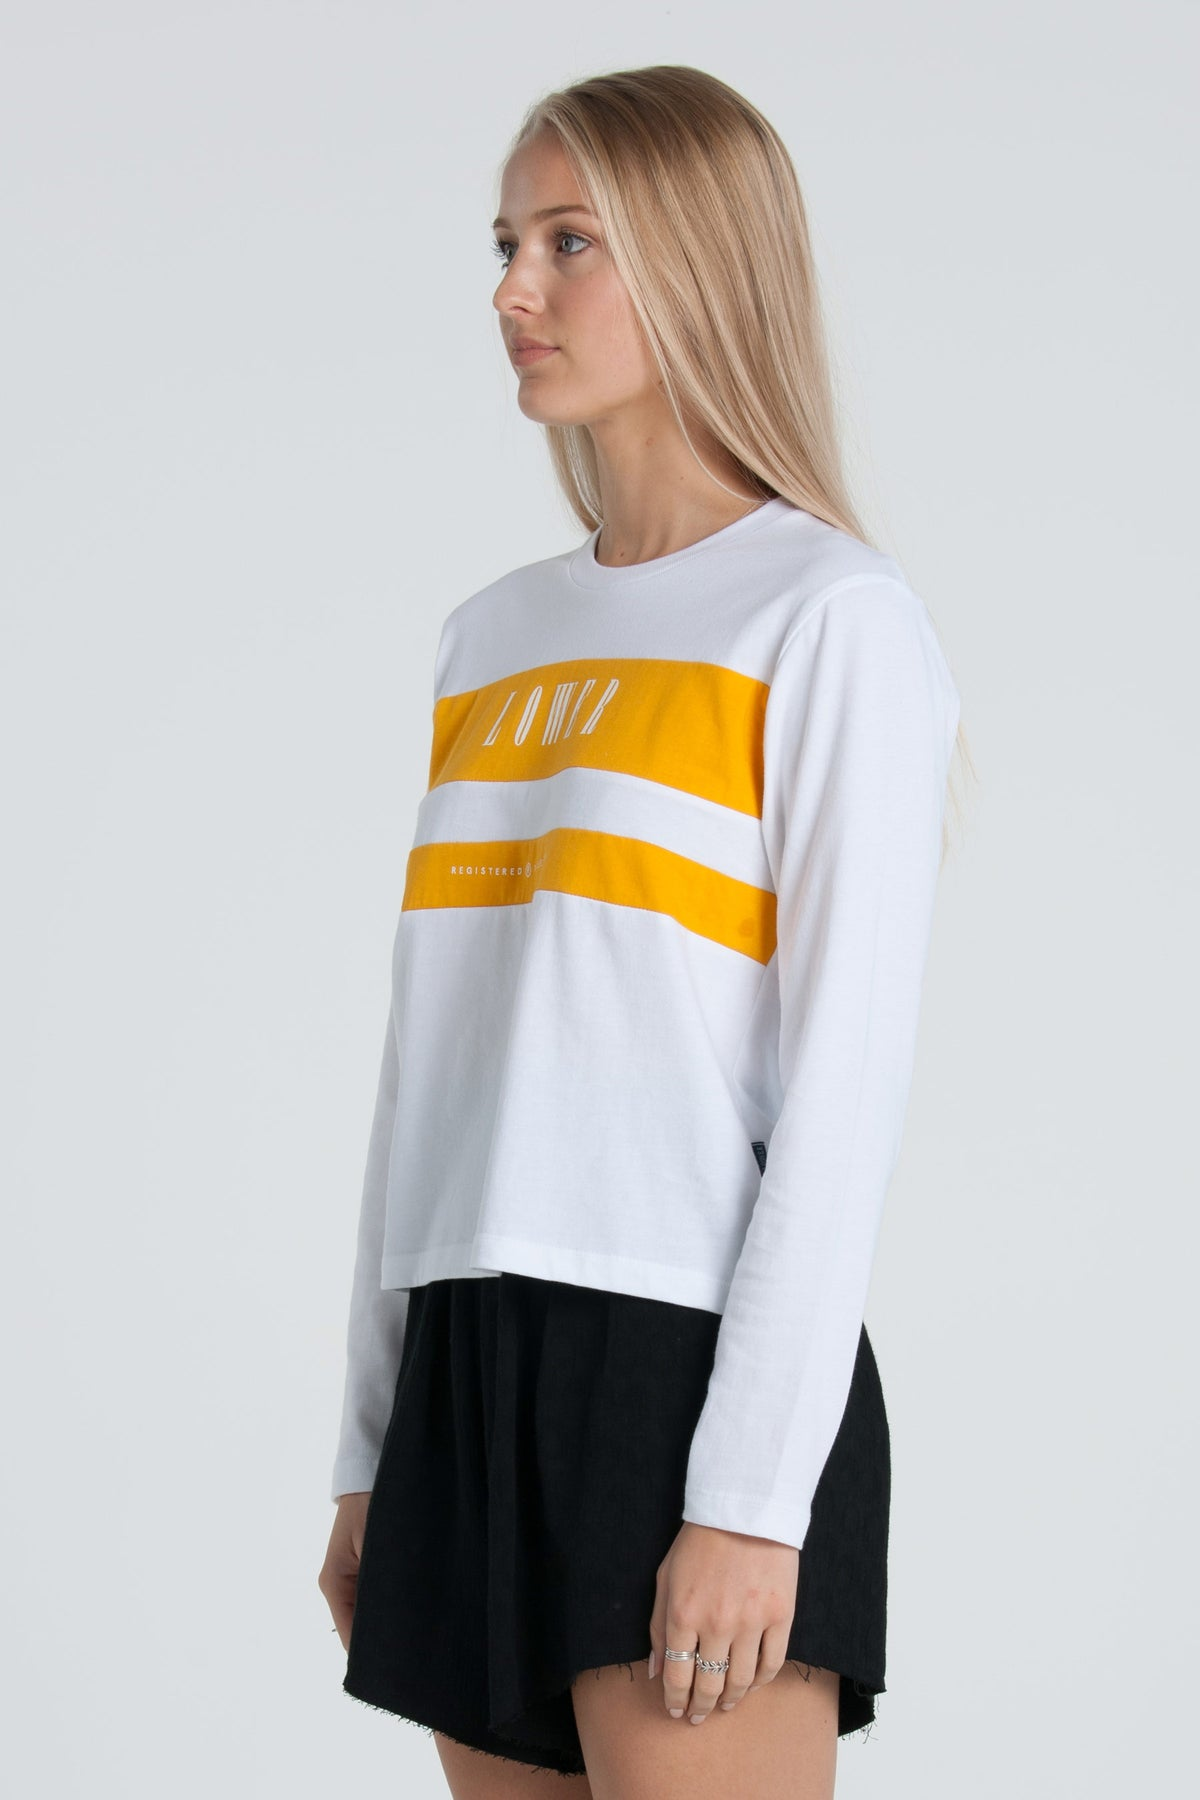 Juniper Cropped Panel LS Tee - White/Gold